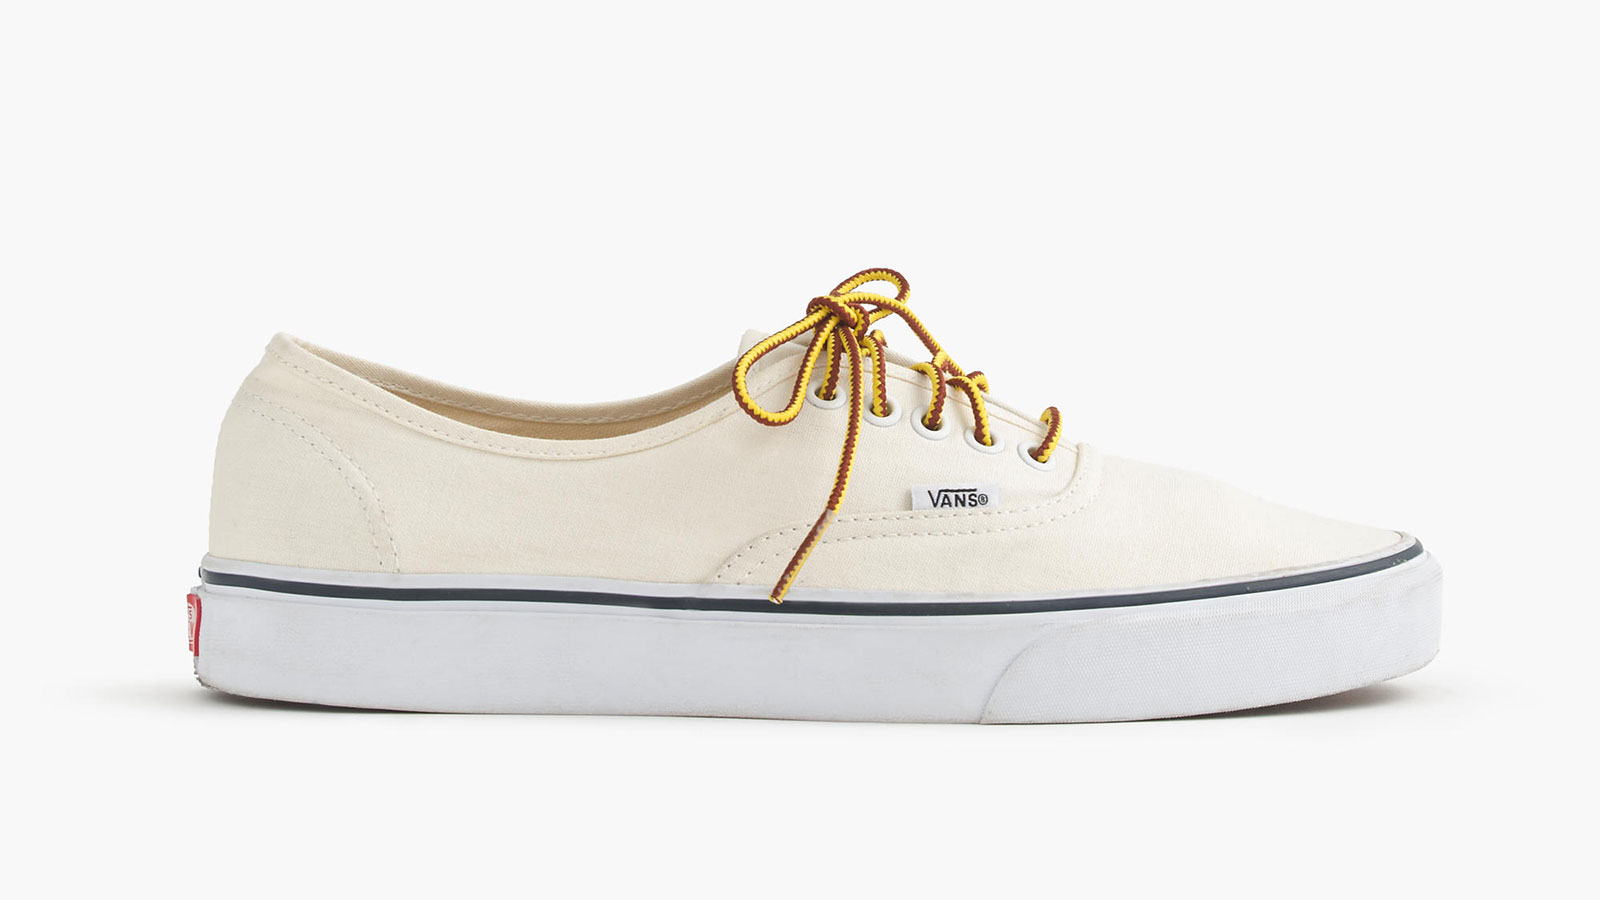 Vans for J. Crew Canvas Authentic White Men's Sneakers | best men's white sneakers